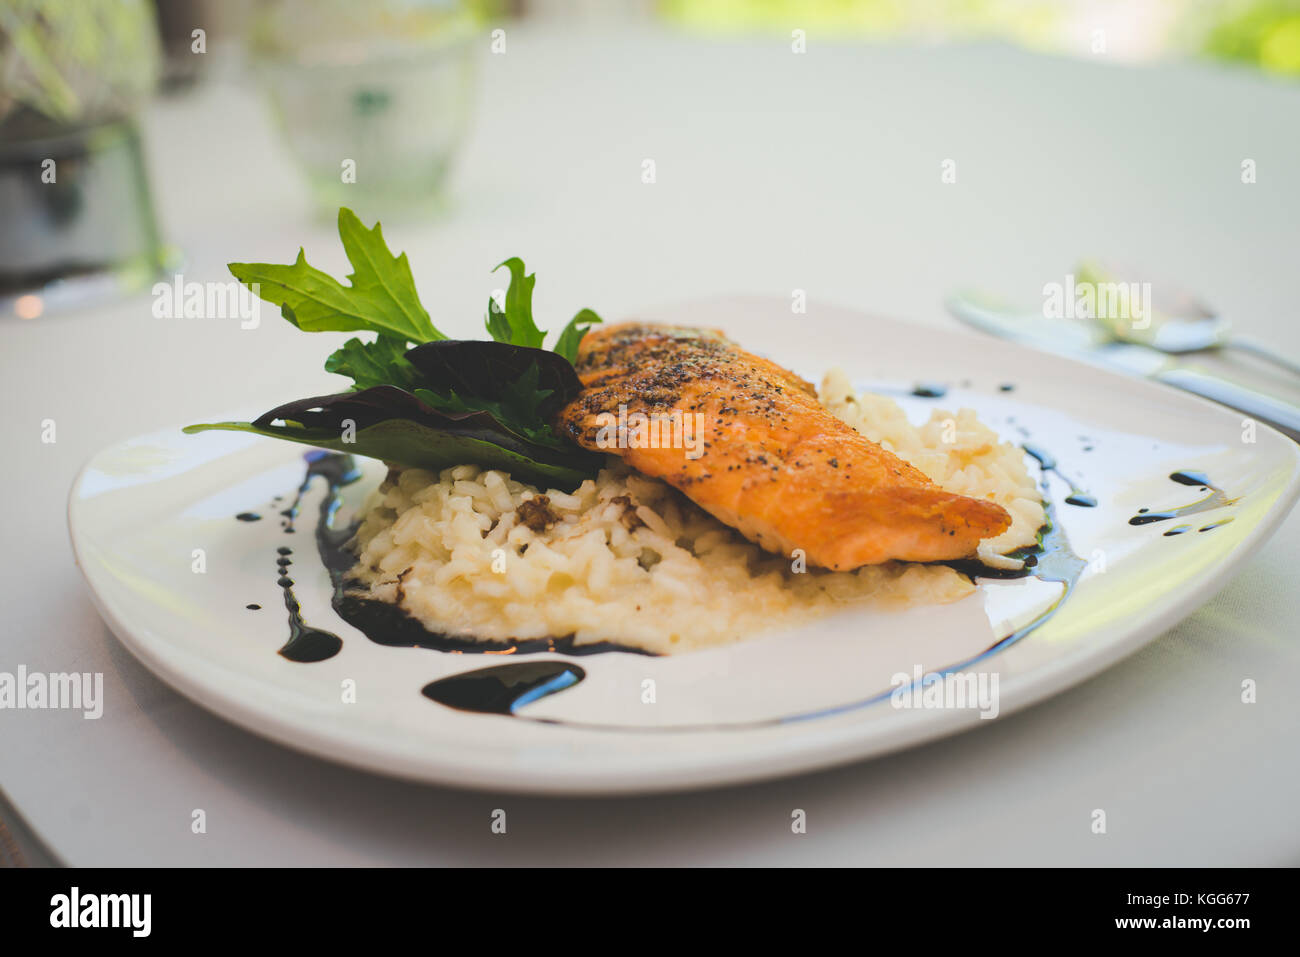 A salmon and rice dish presented plated at a restaurant. - Stock Image